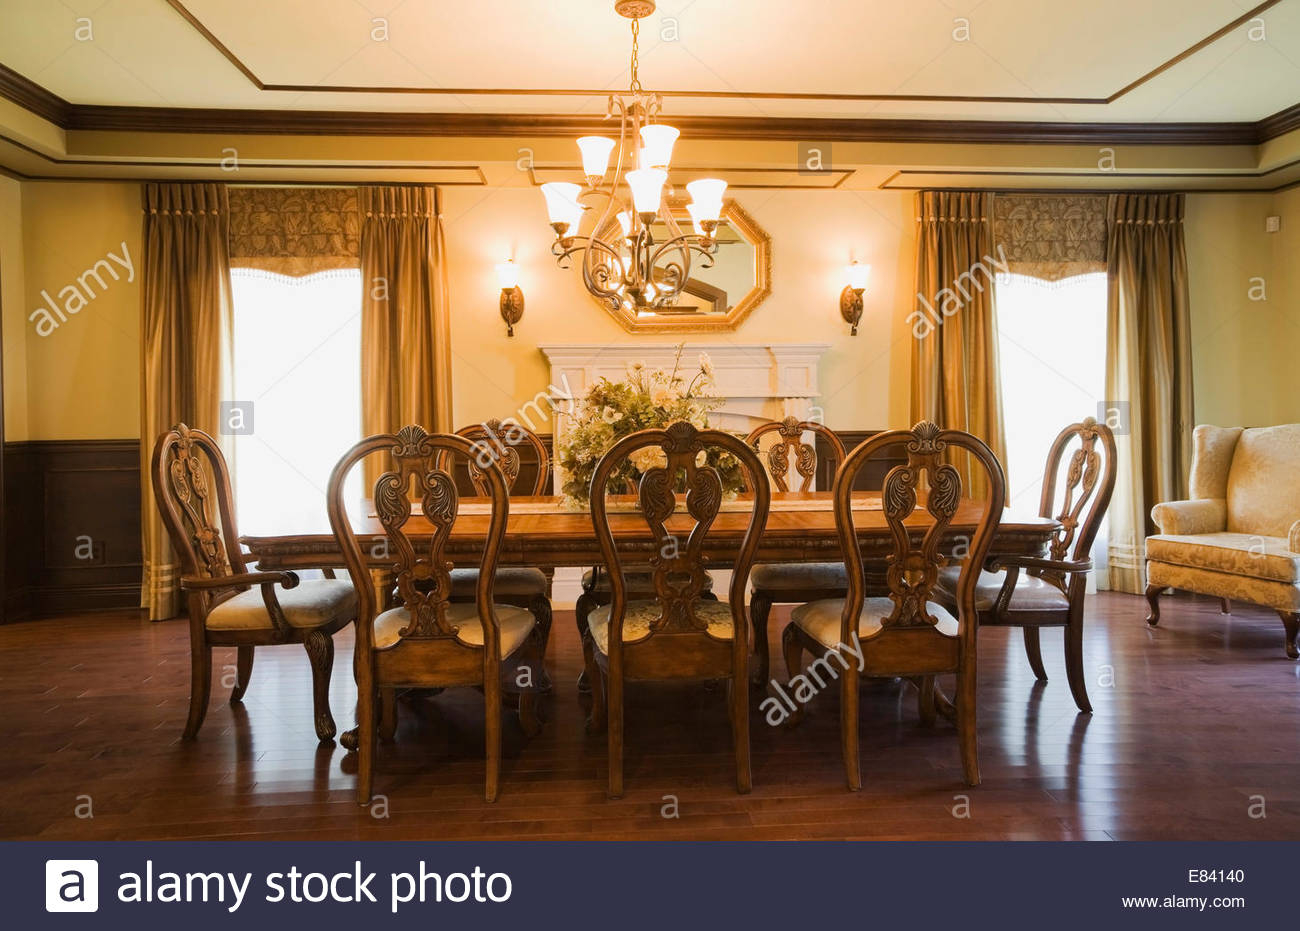 Luxurious Dining Room With A Wooden Table And Chairs Quebec pertaining to dimensions 1300 X 931